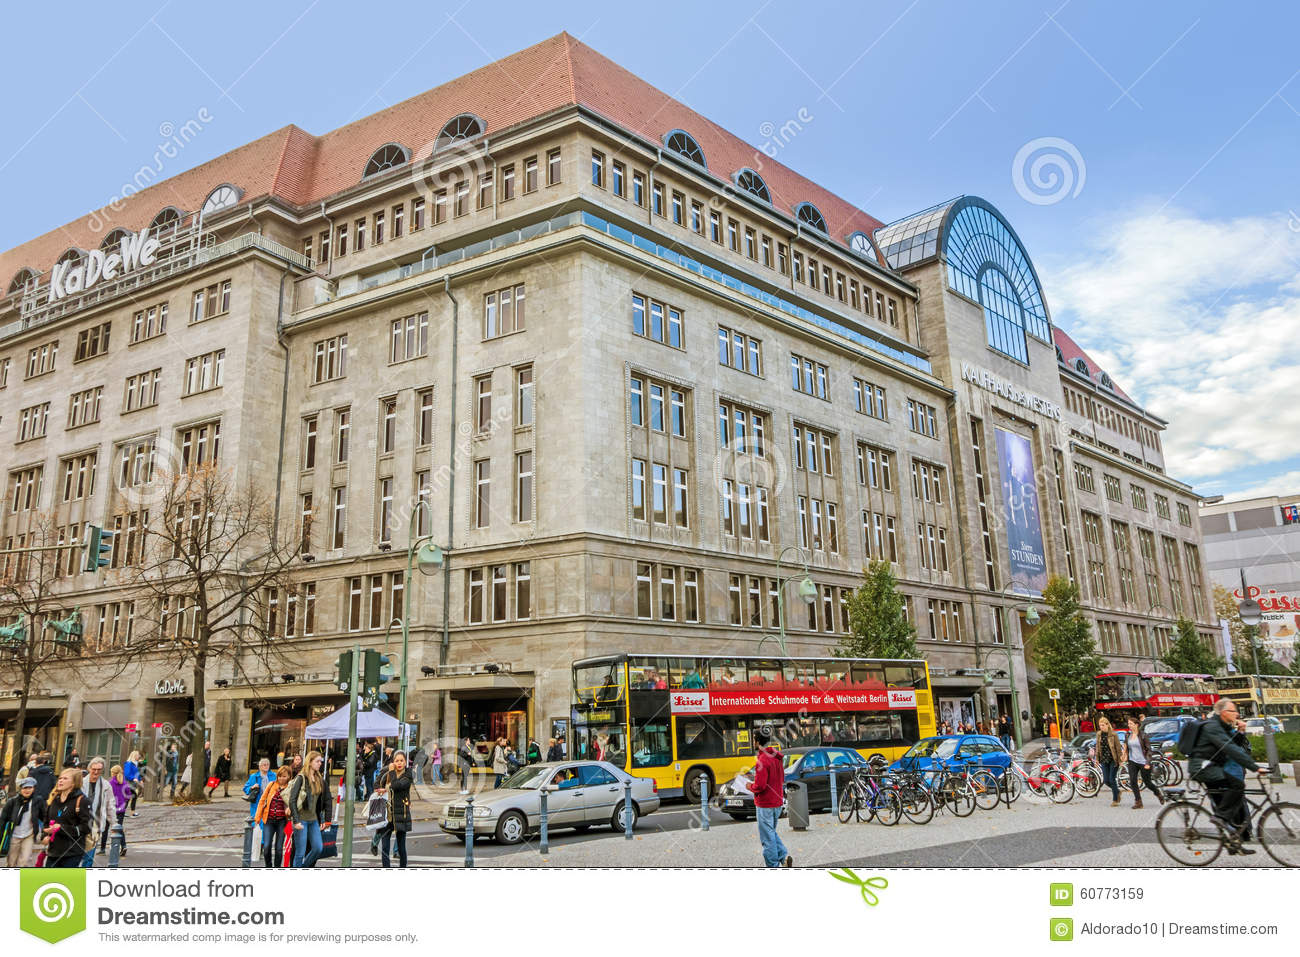 shopping mall kadewe kaufhaus des westens berlin editorial stock image image of building. Black Bedroom Furniture Sets. Home Design Ideas